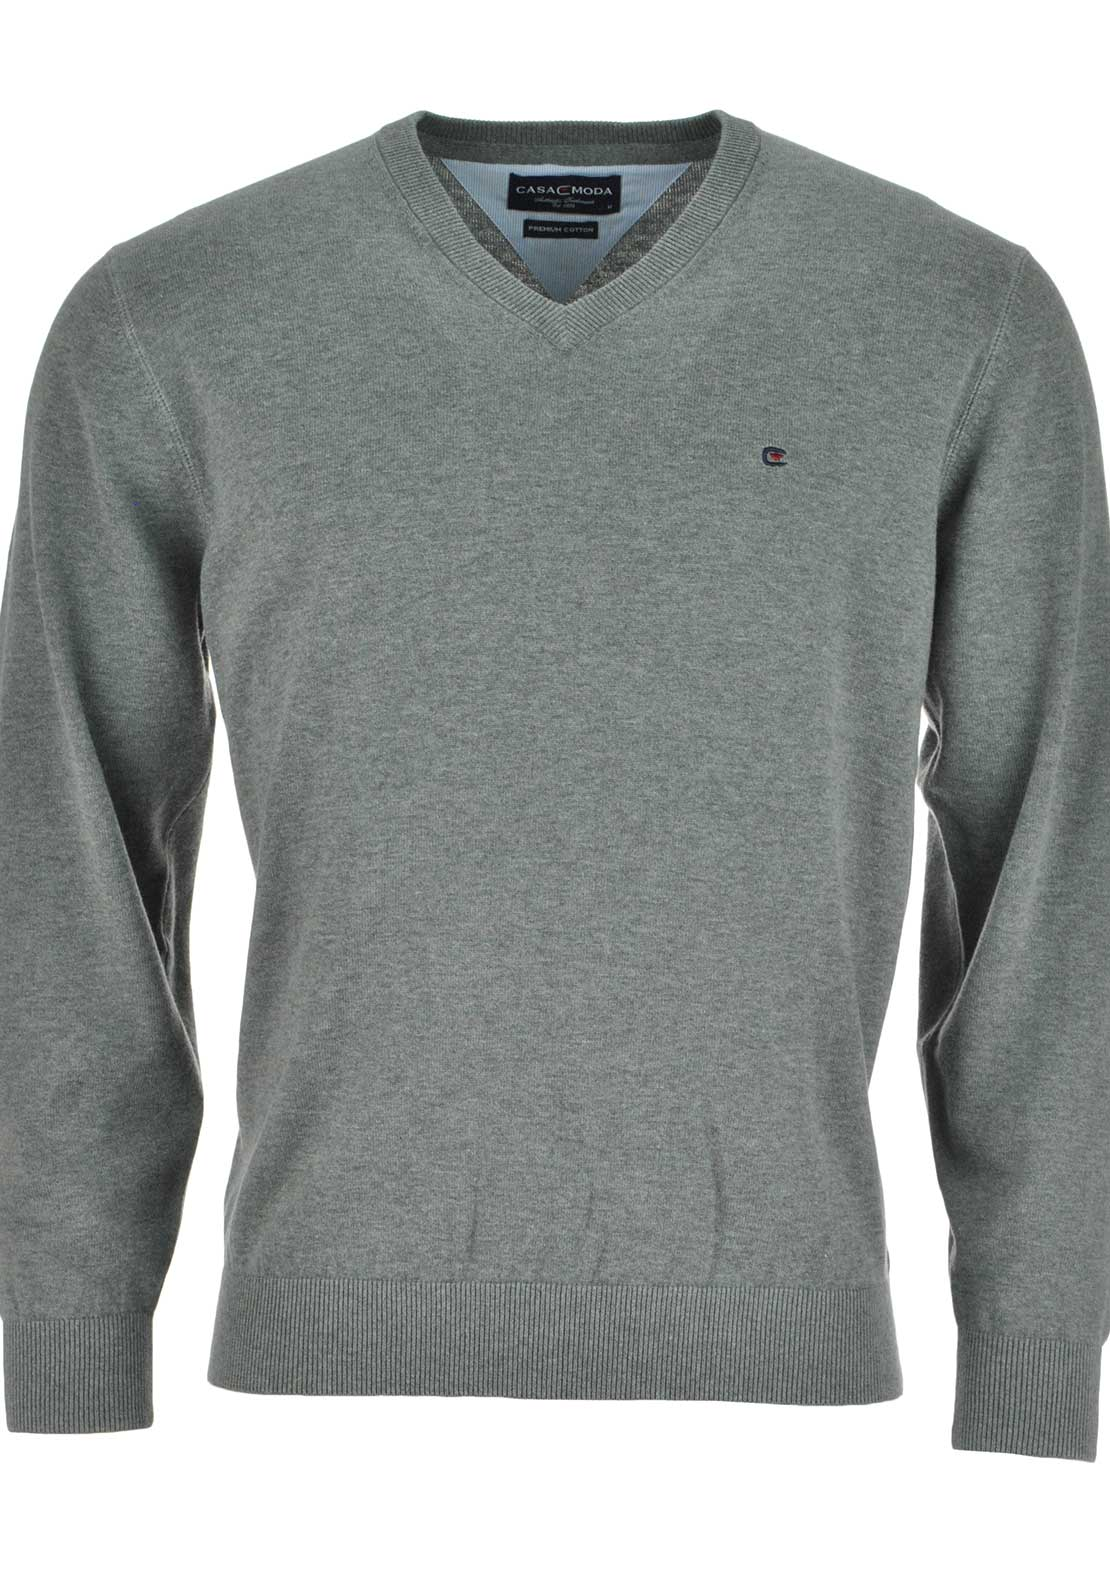 Casa Moda Mens Plain V-neck Jumper, Grey